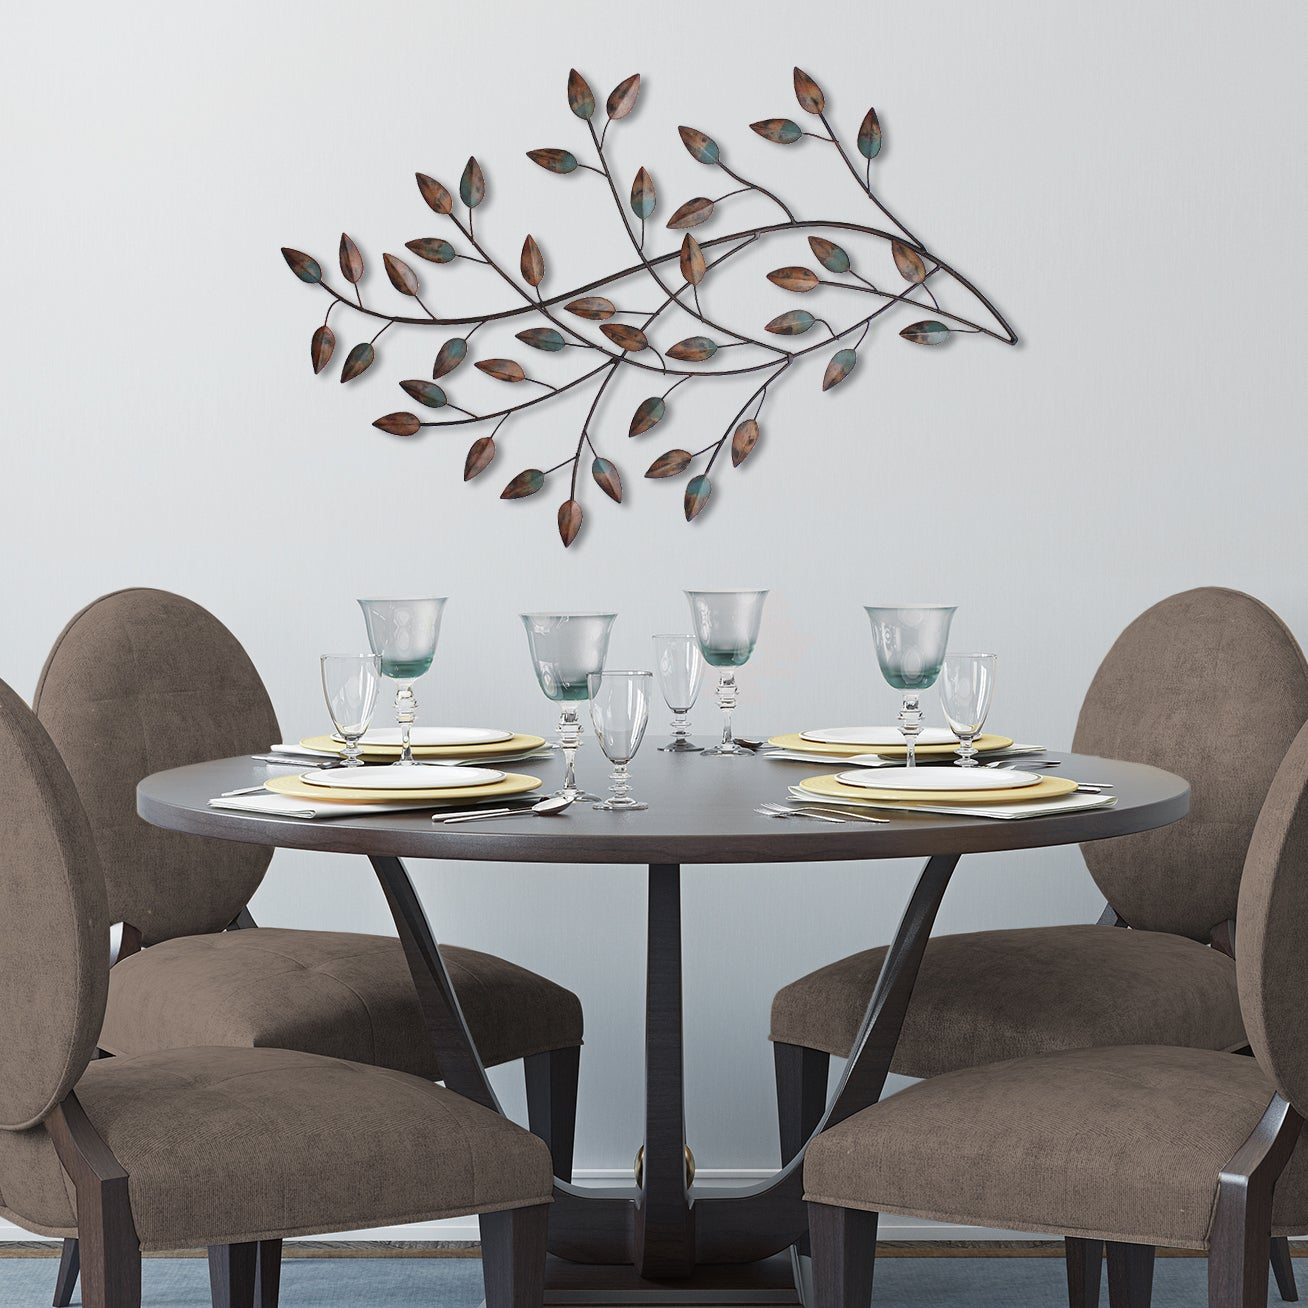 Silver Orchid Nansen Blowing Leaves Wall Decor Inside Blowing Leaves Wall Decor (View 5 of 30)